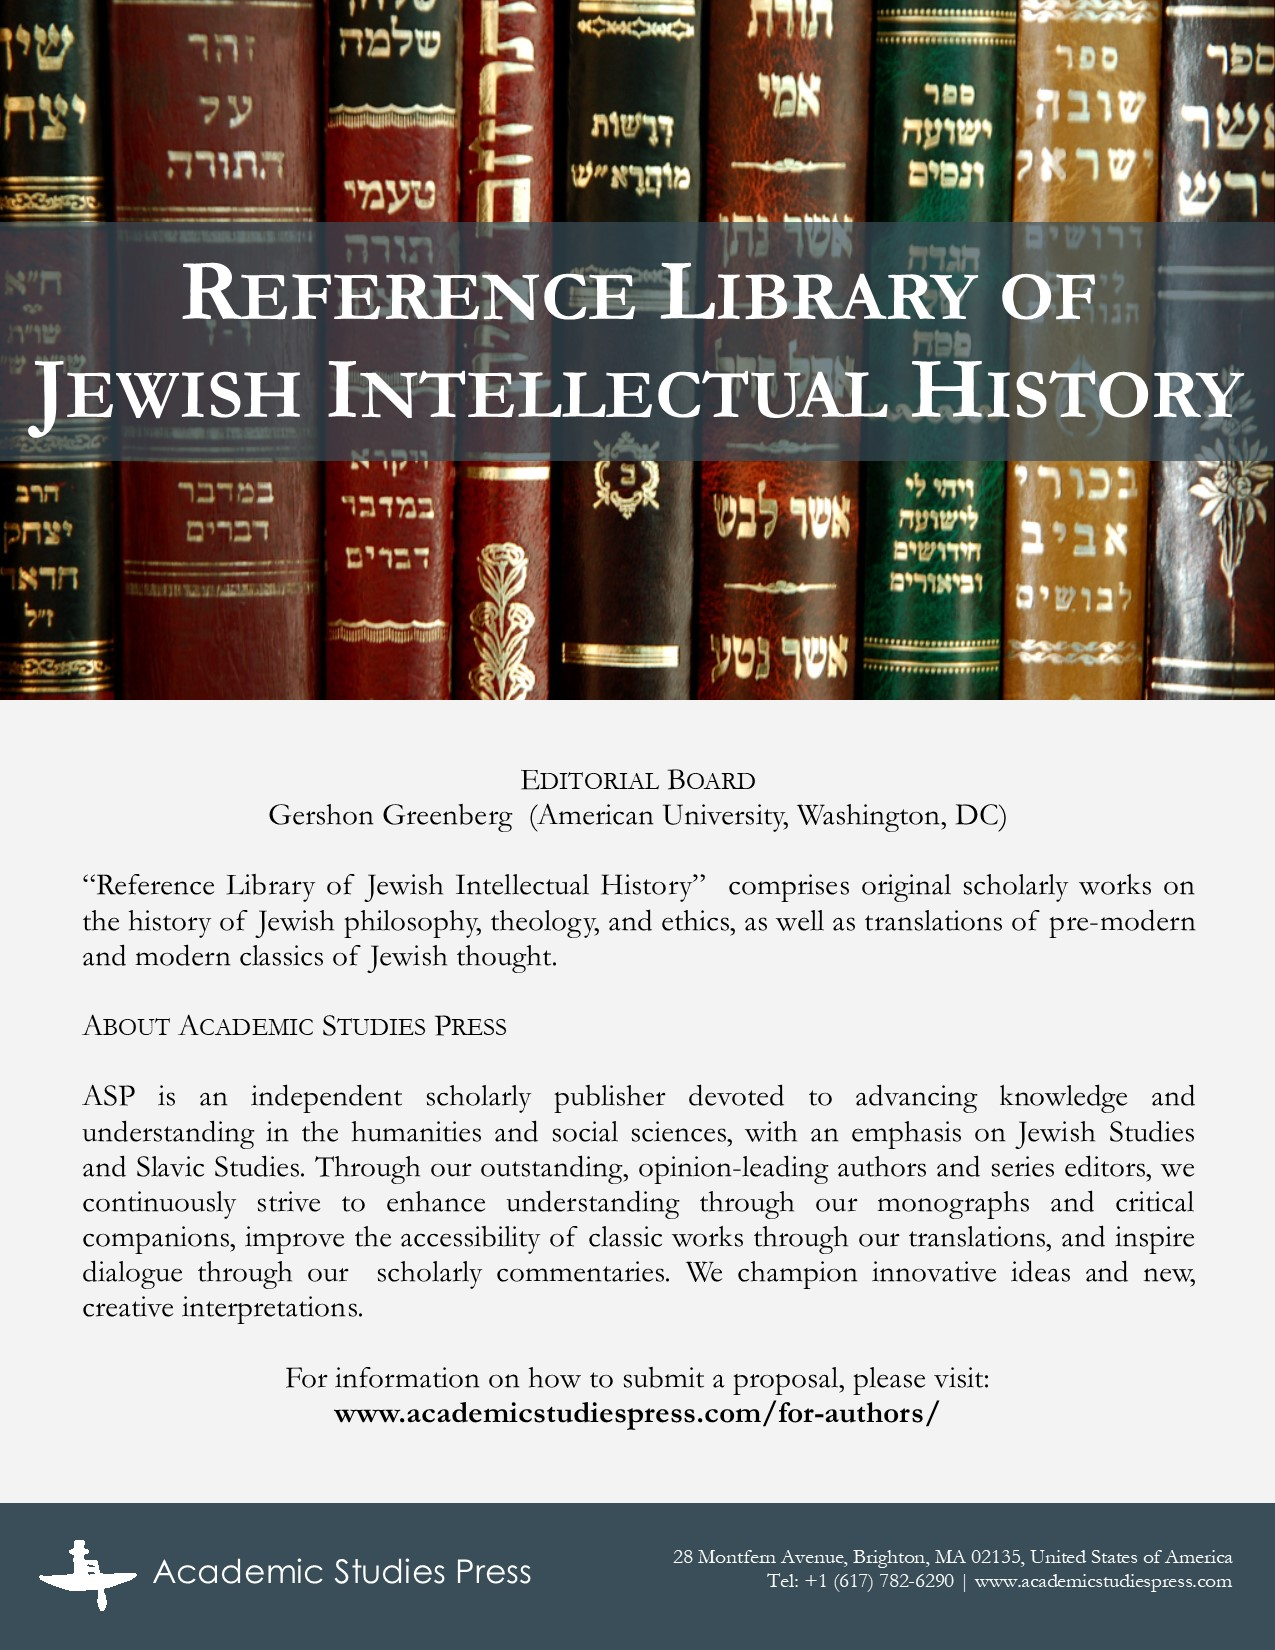 Reference Library of Jewish Intellectual History Flyer.jpg